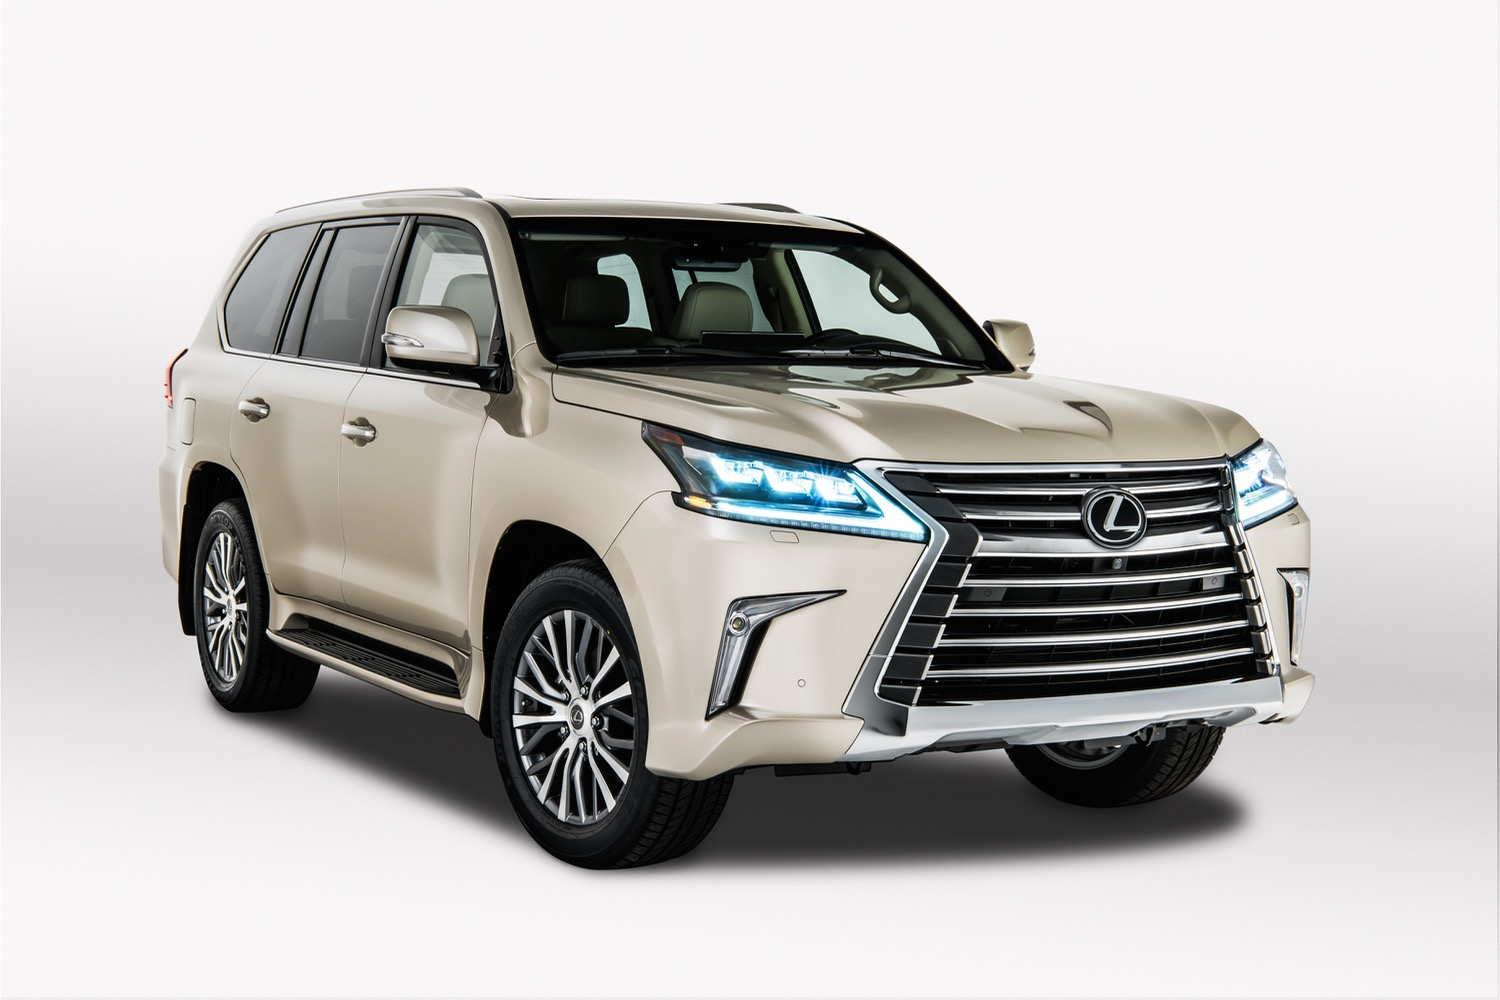 2018 Lexus Lx 570 Roams The Earth Like A High End